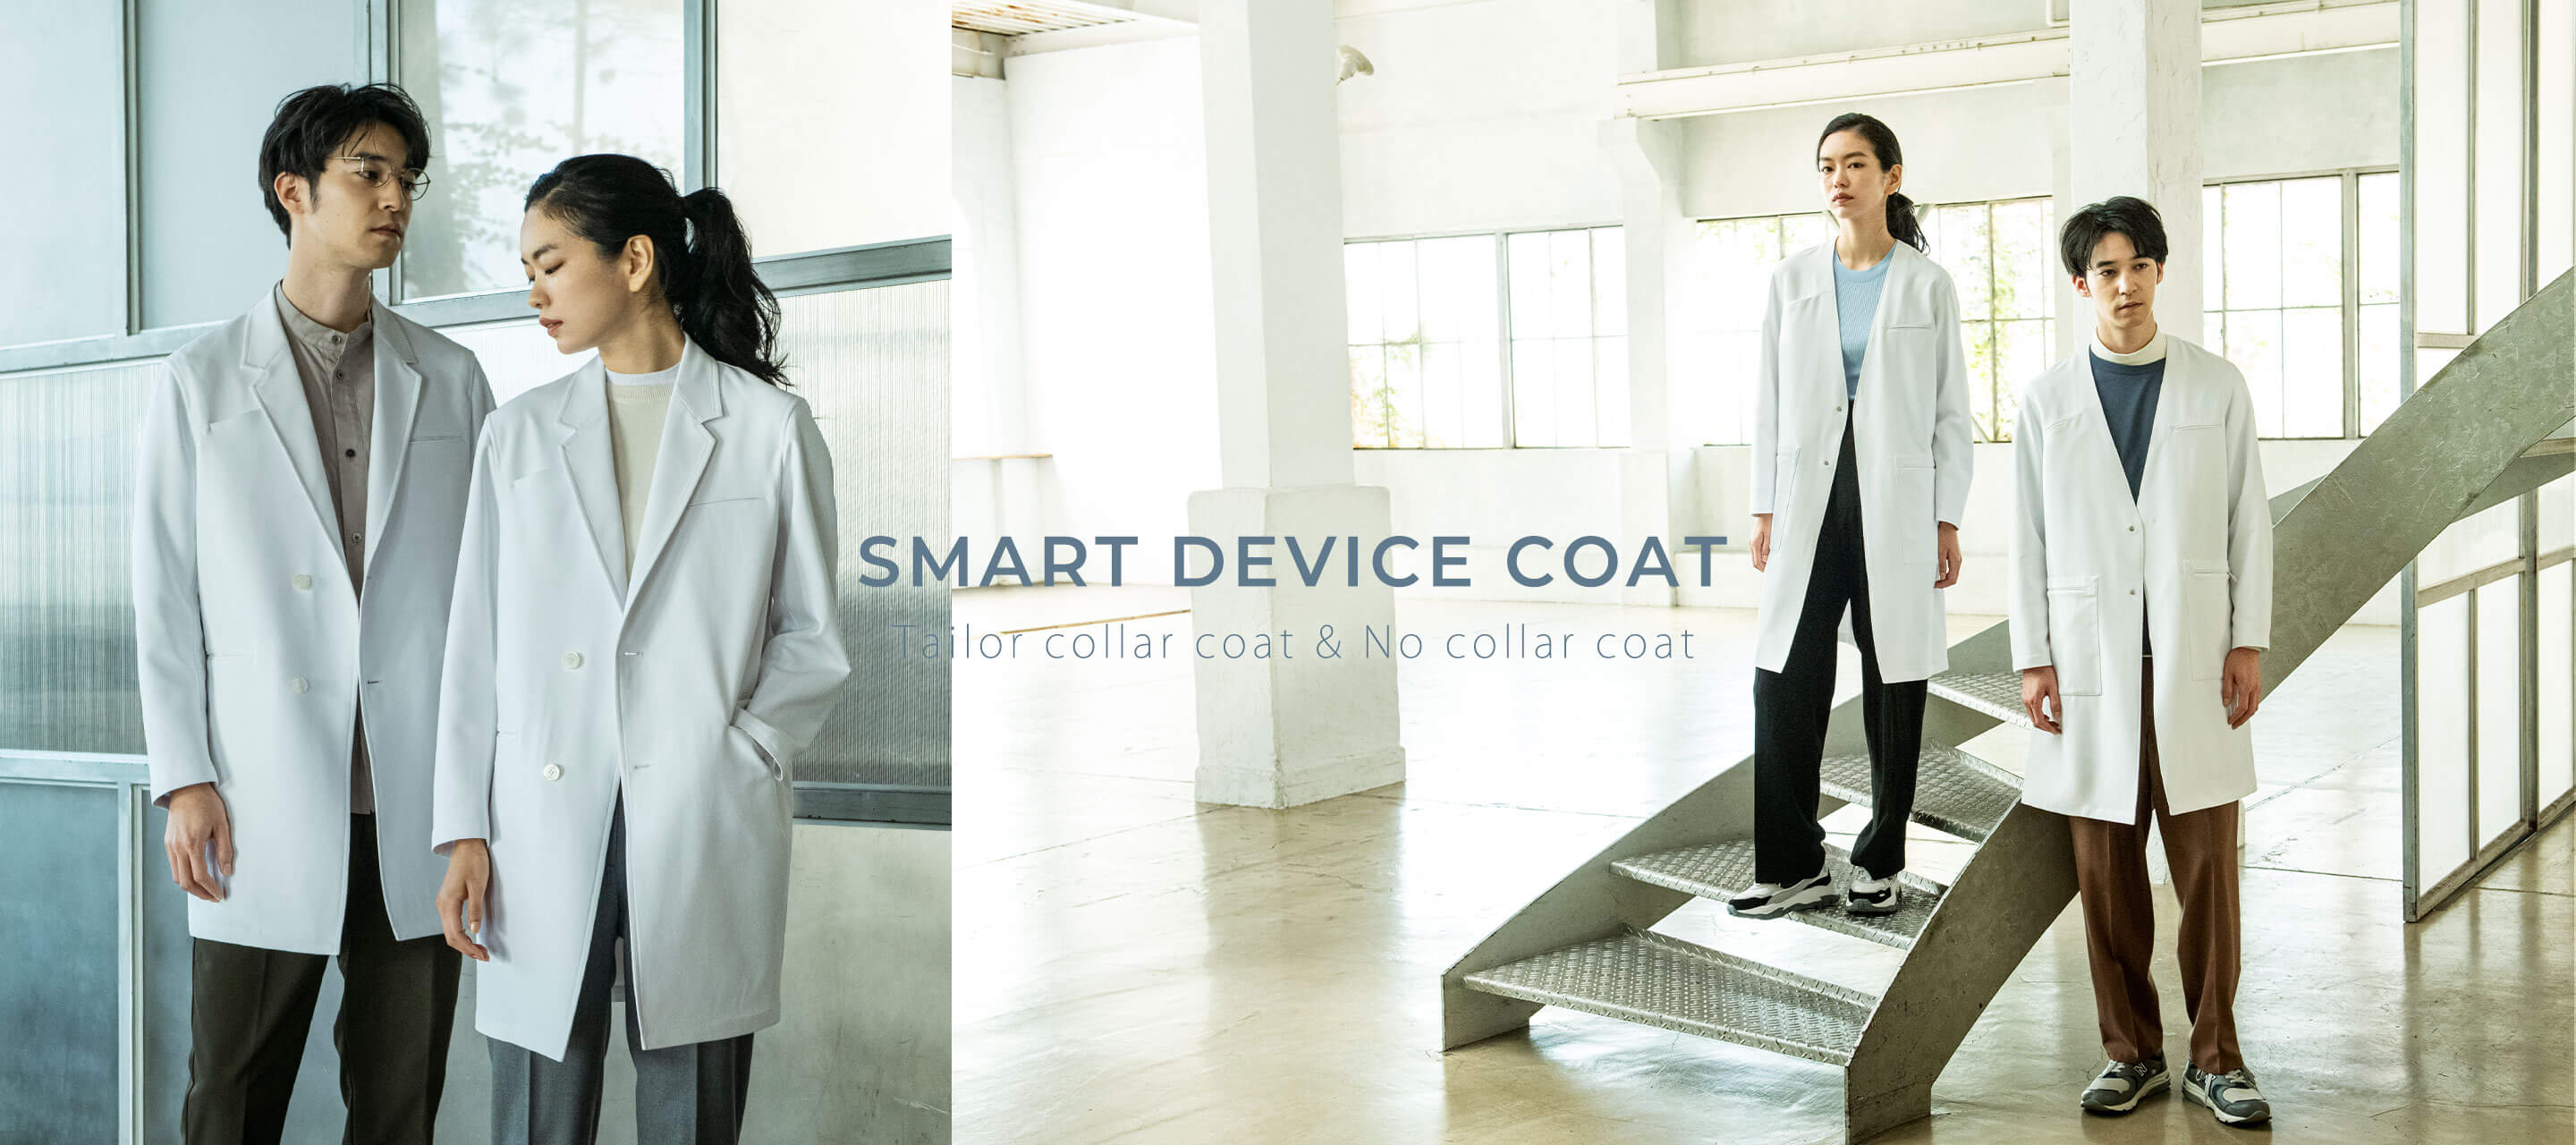 SMART DEVICE COAT  Tailor collar & No collar